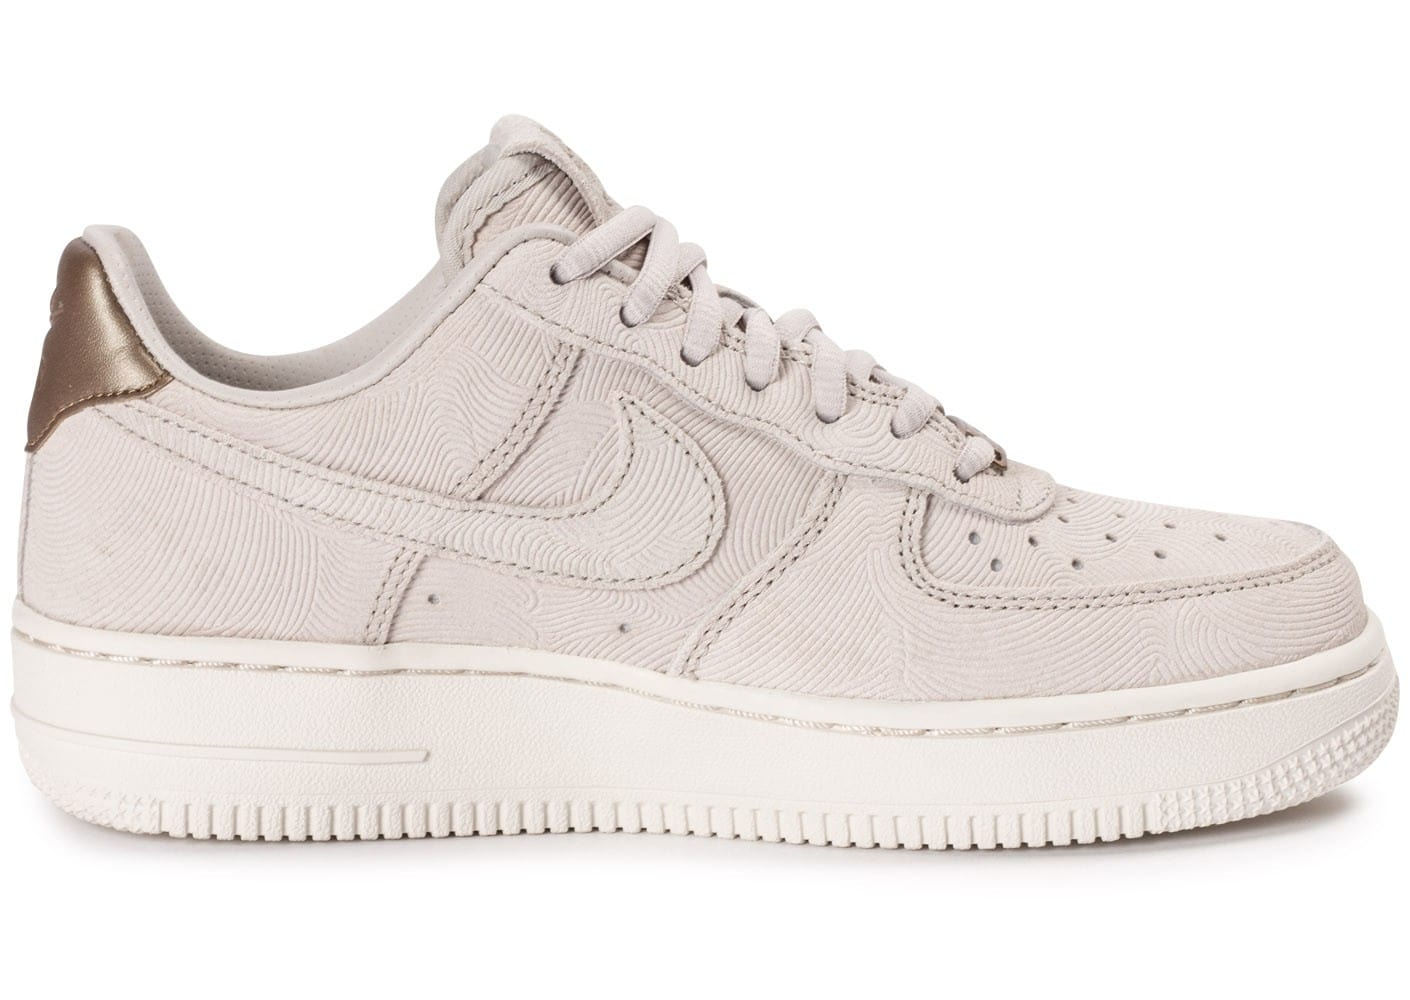 buy popular 87150 44c75 ... Chaussures Nike Air Force 1 Premium Suede Gamma grey vue dessous ...